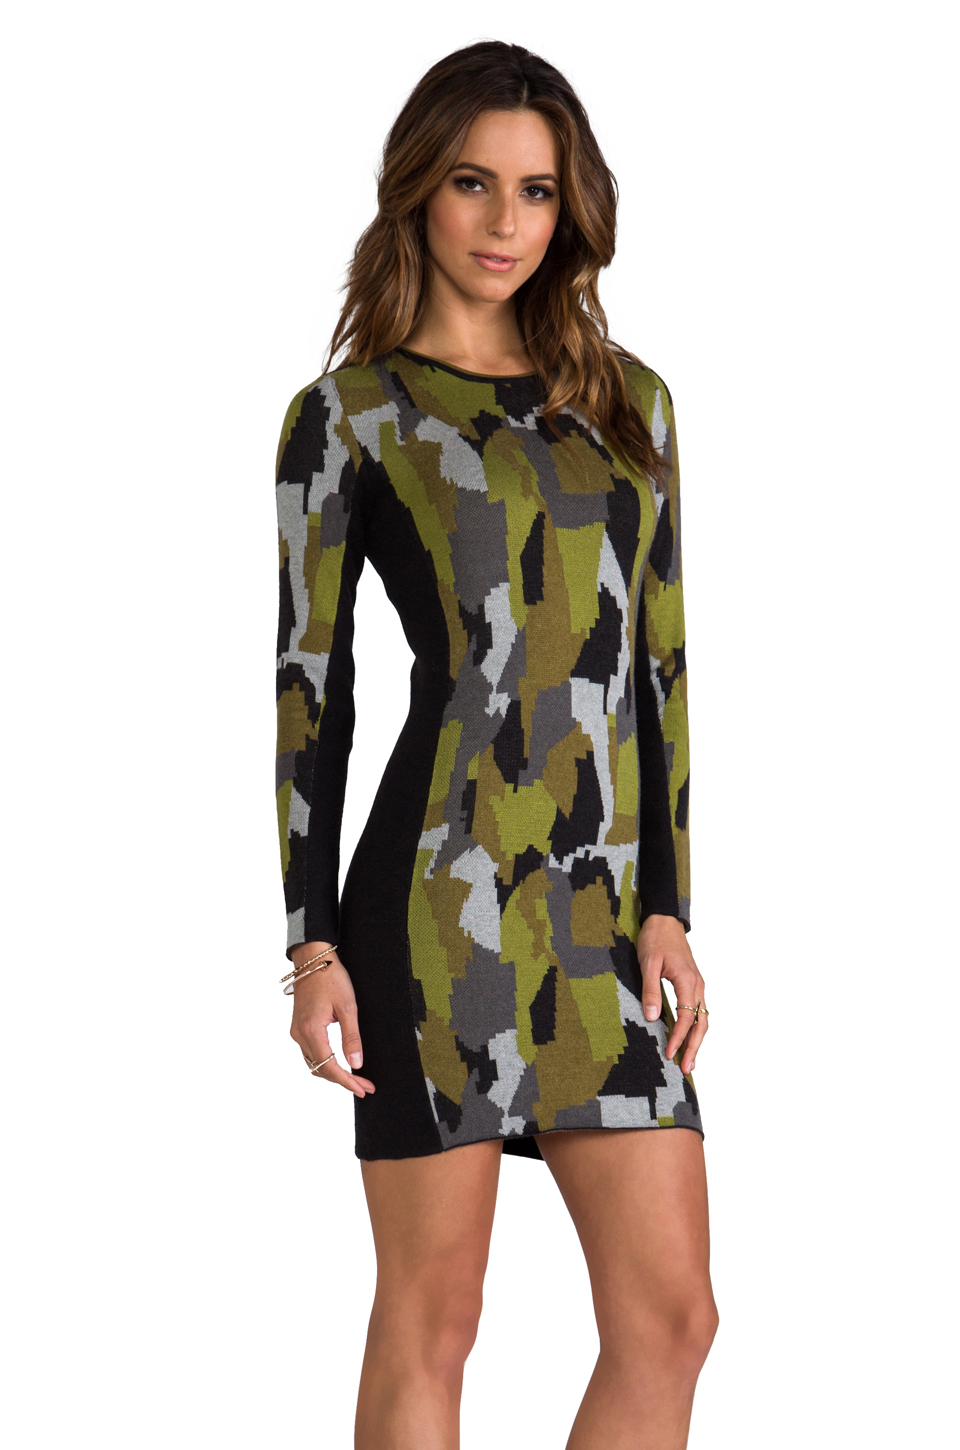 Lyst torn by ronny kobo taylor camouflage dress in army for Green camo shirt outfit